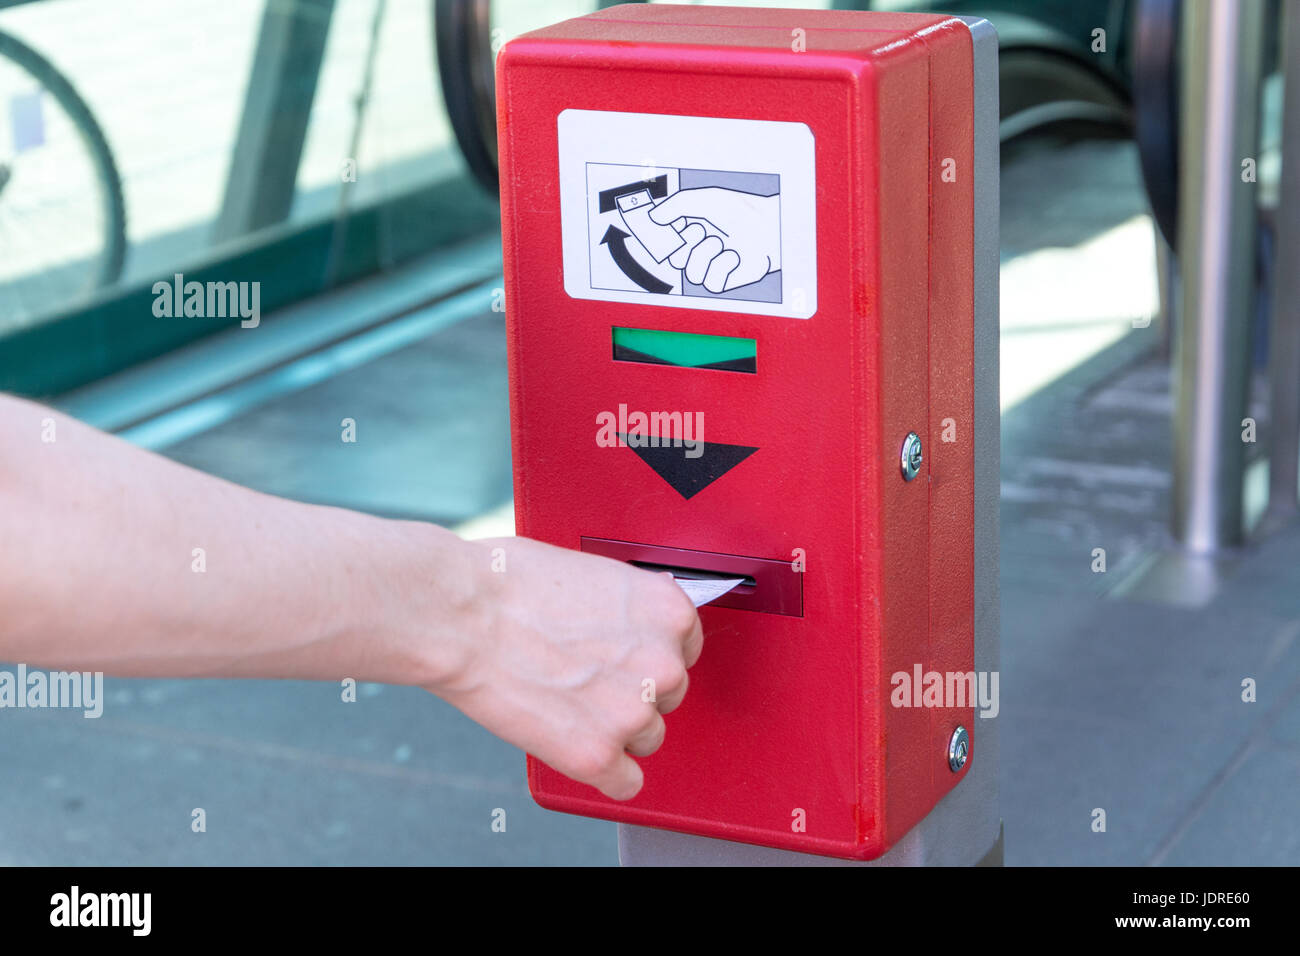 Validate a ticket at a red ticket validation machine for the underground from the side Stock Photo